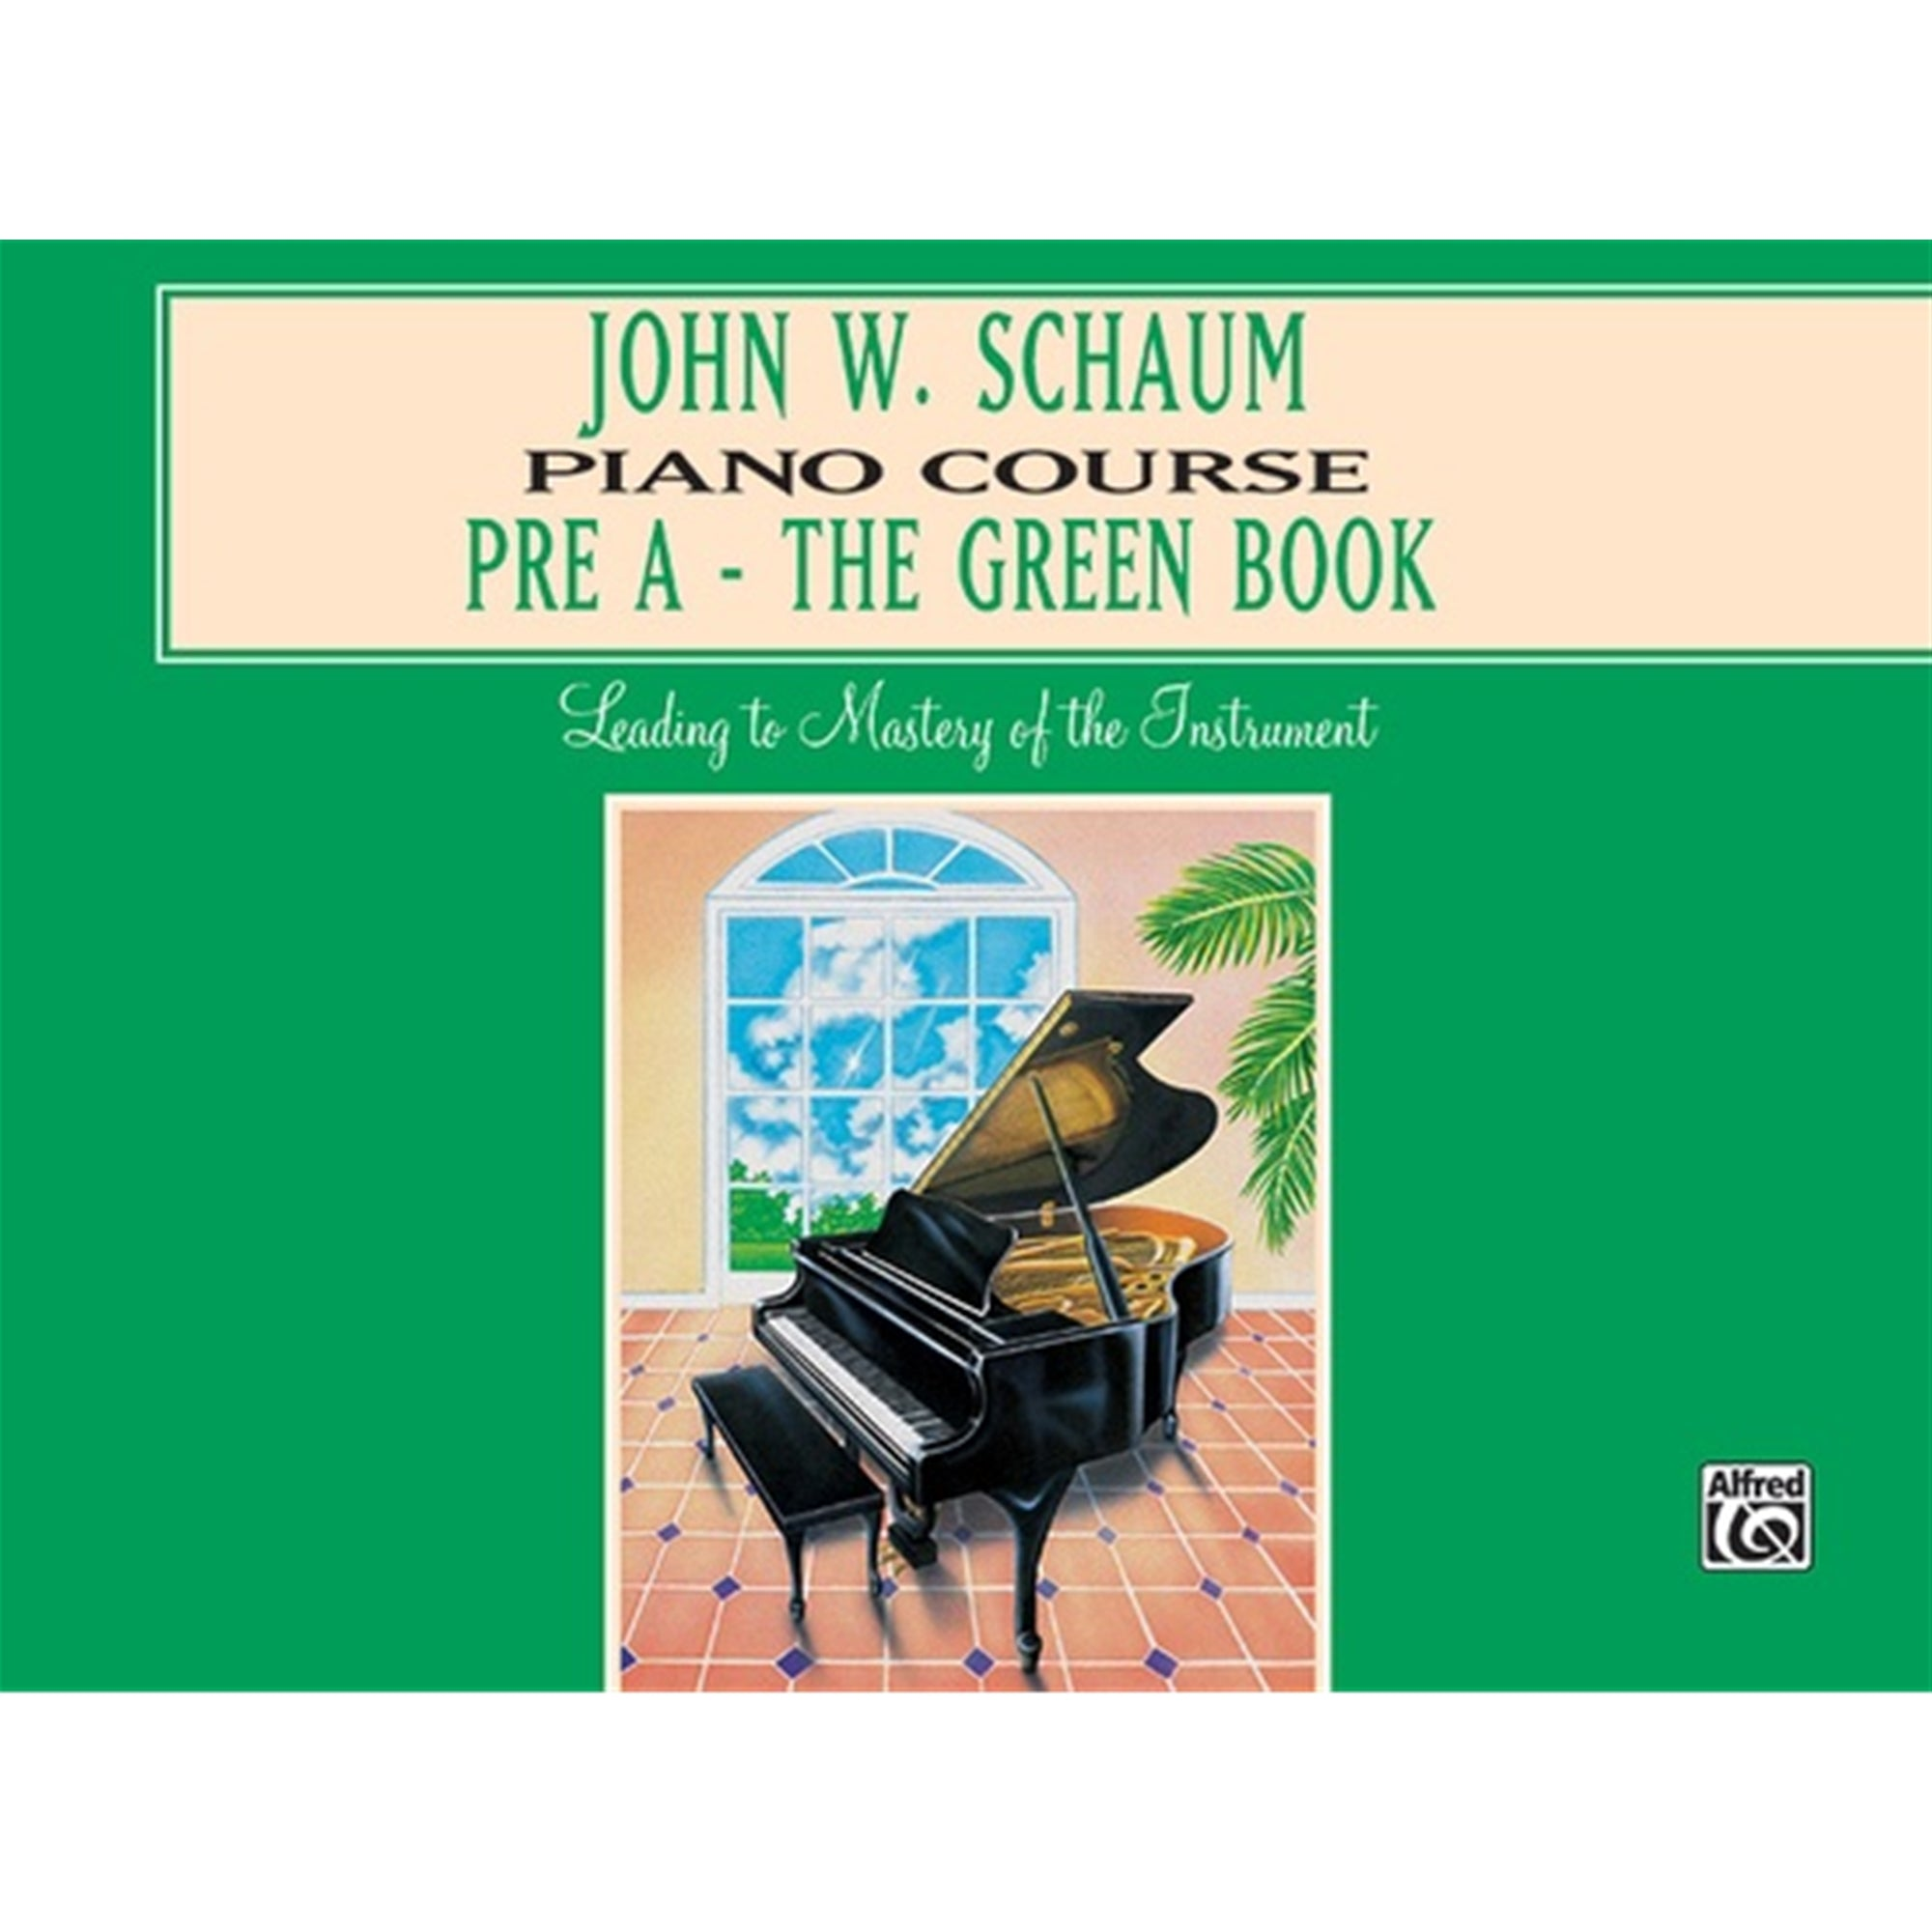 ALFRED 00EL00165A John W. Schaum Piano Course, Pre-A: The Green Book [Piano]